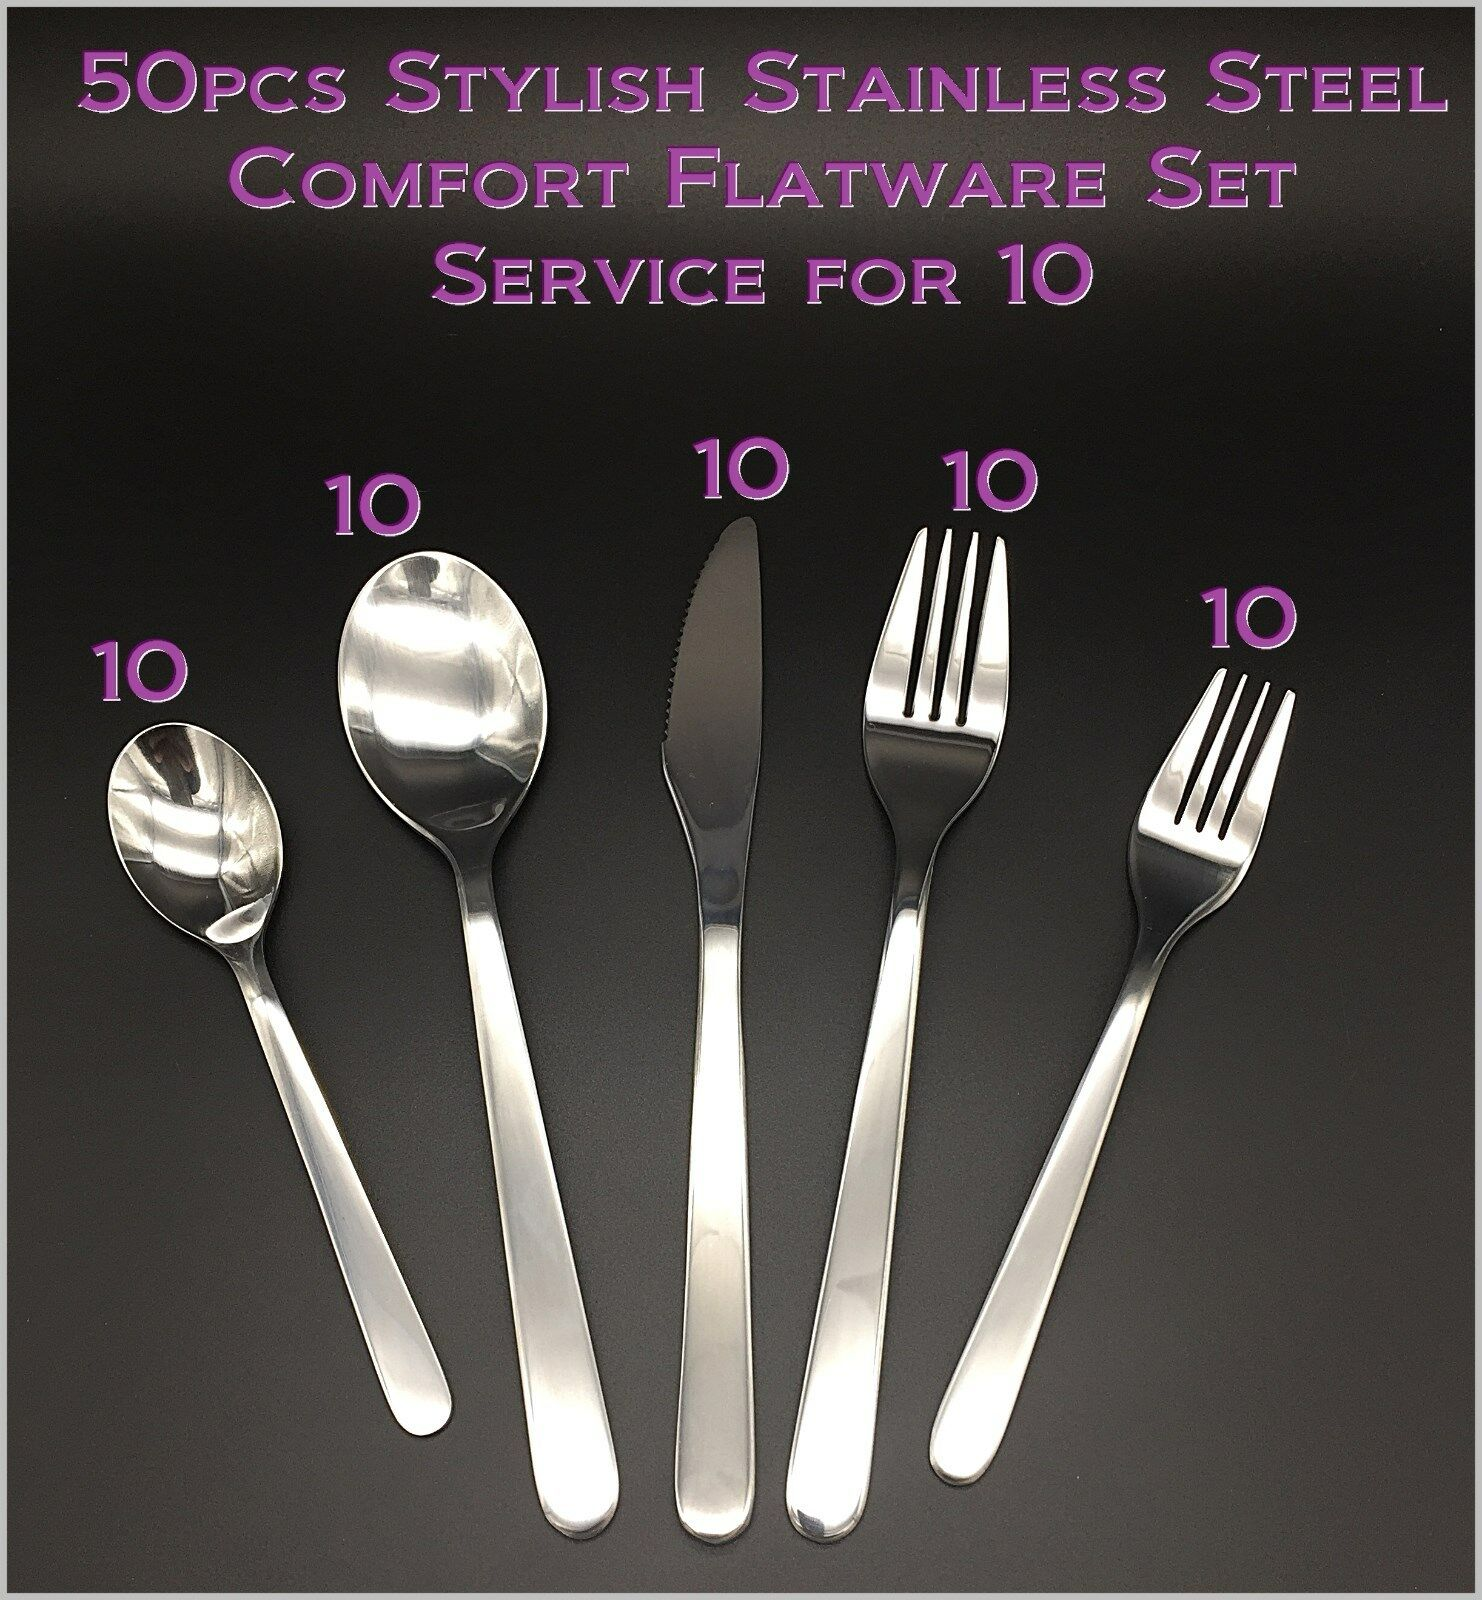 50pcs - New Modern, Stylish & Classic Classic Classic Stainless Steel Flatware - Set for 10 d0310e